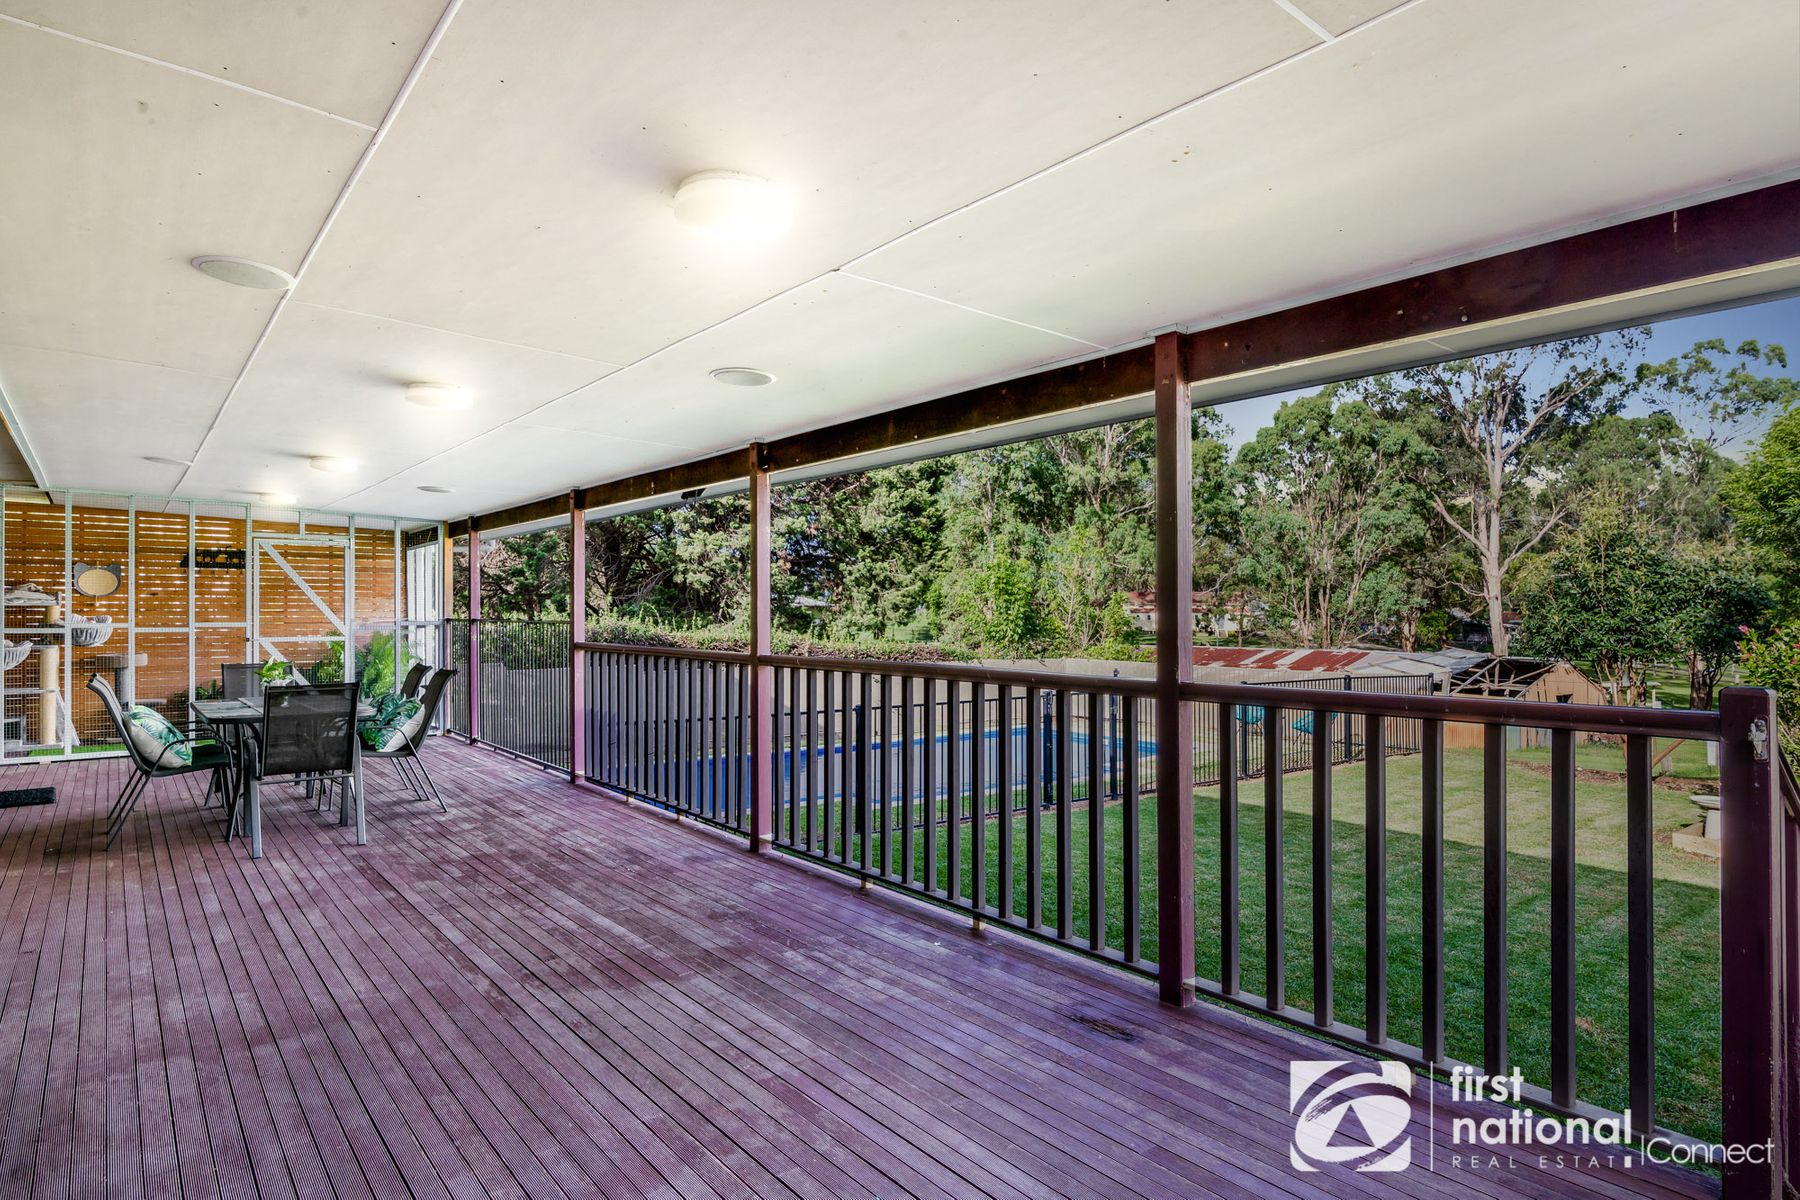 500 Wilberforce Rd, Wilberforce, NSW 2756